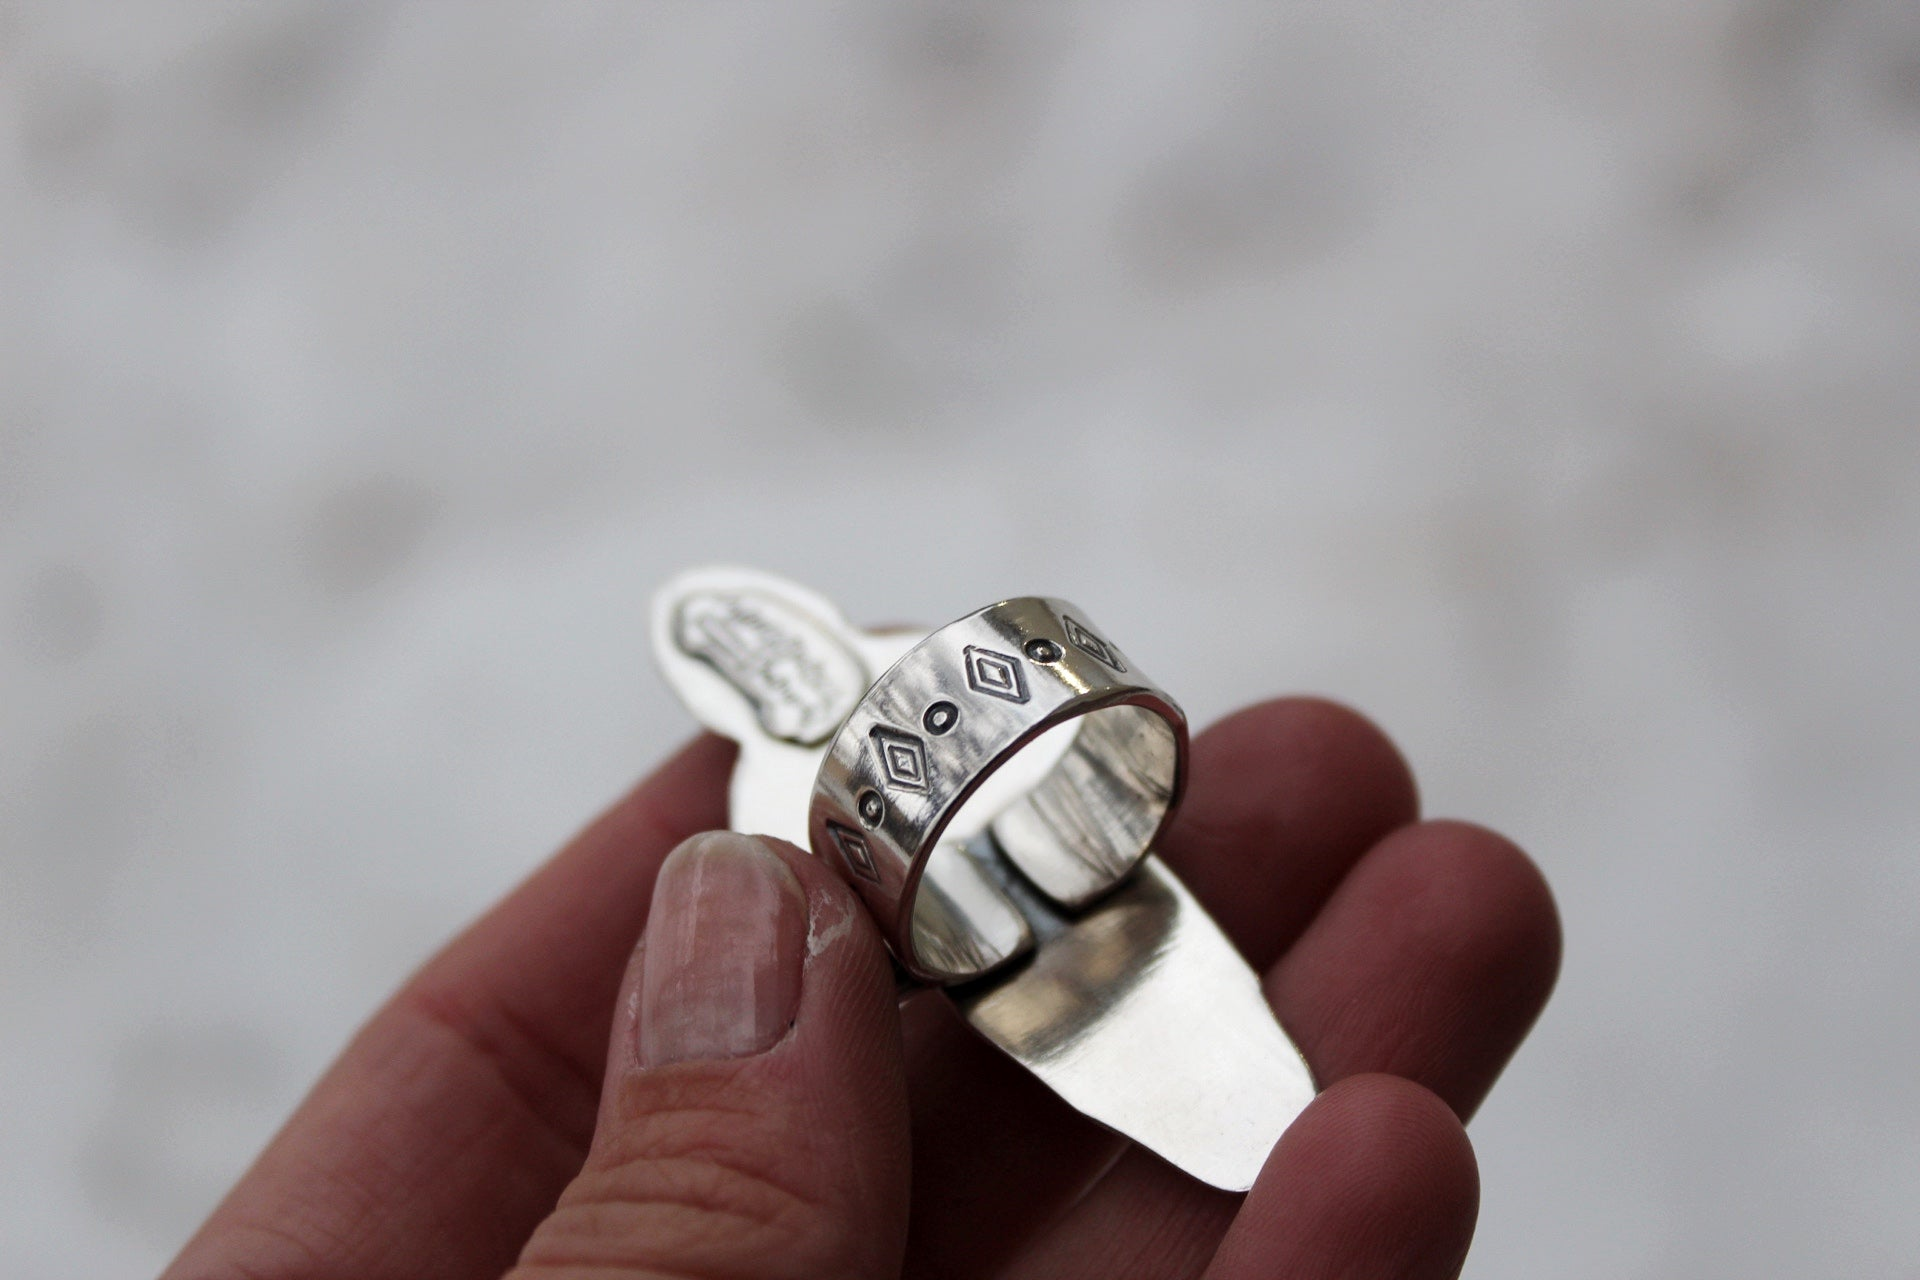 Bull Skull Statement Ring #2